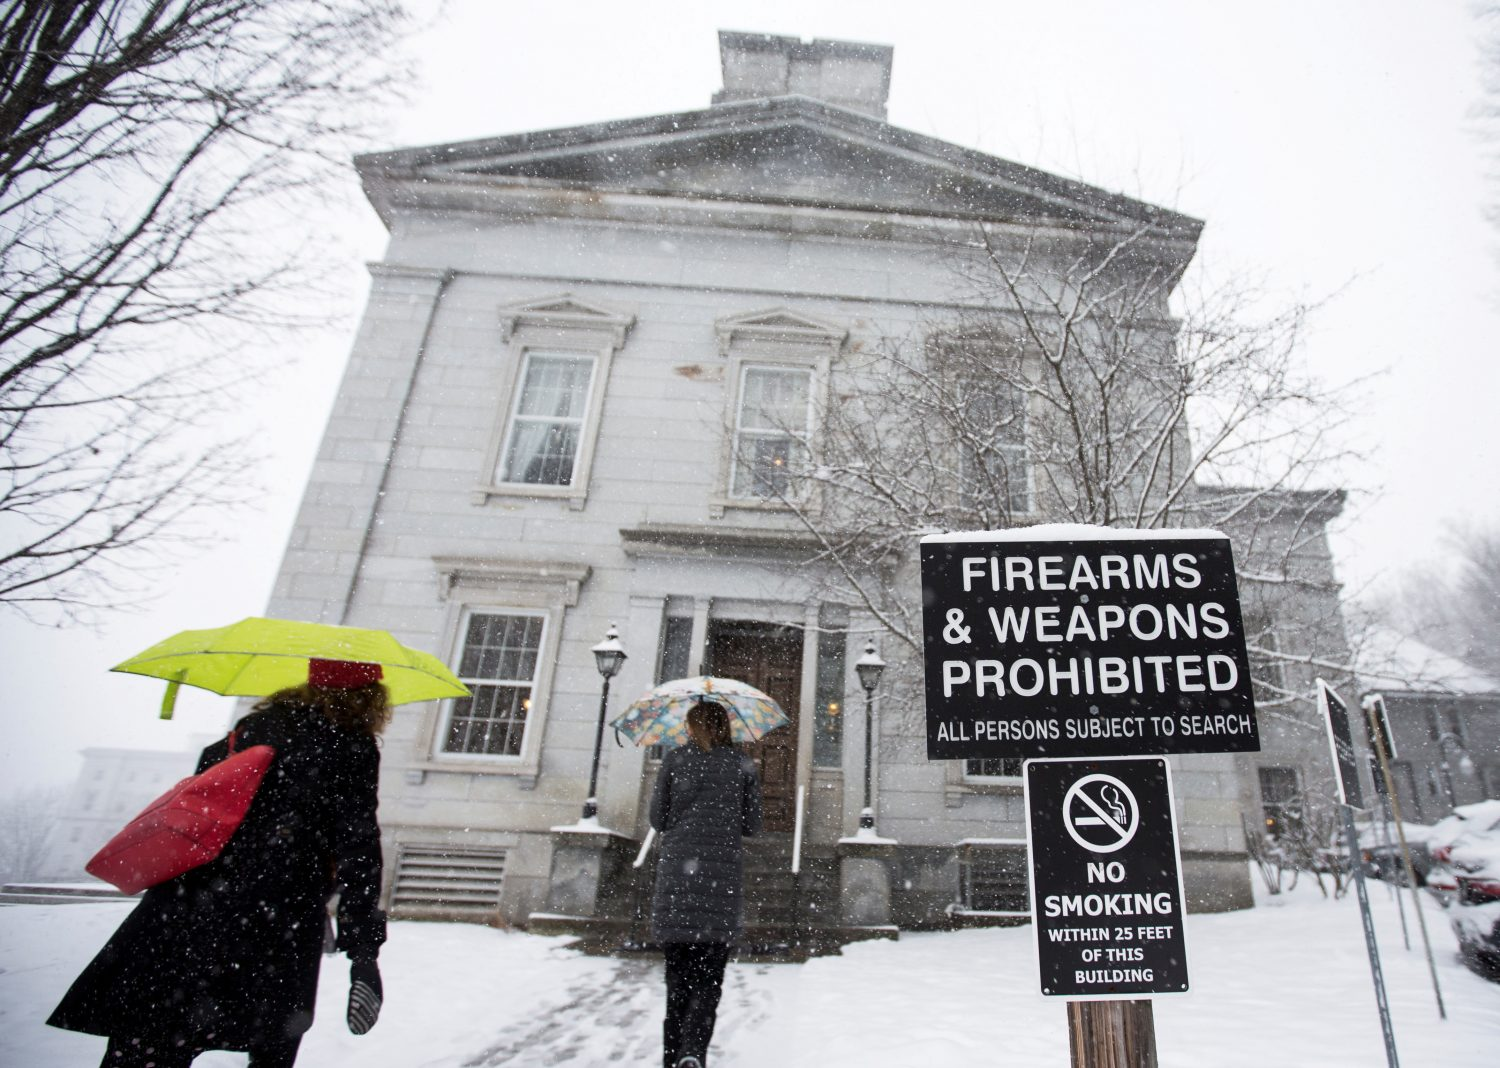 FILE PHOTO: People walk past a sign prohibiting firearms and weapons inside the State Legislature in Montpelier, Vermont, U.S., March 13, 2018. REUTERS/Christinne Muschi